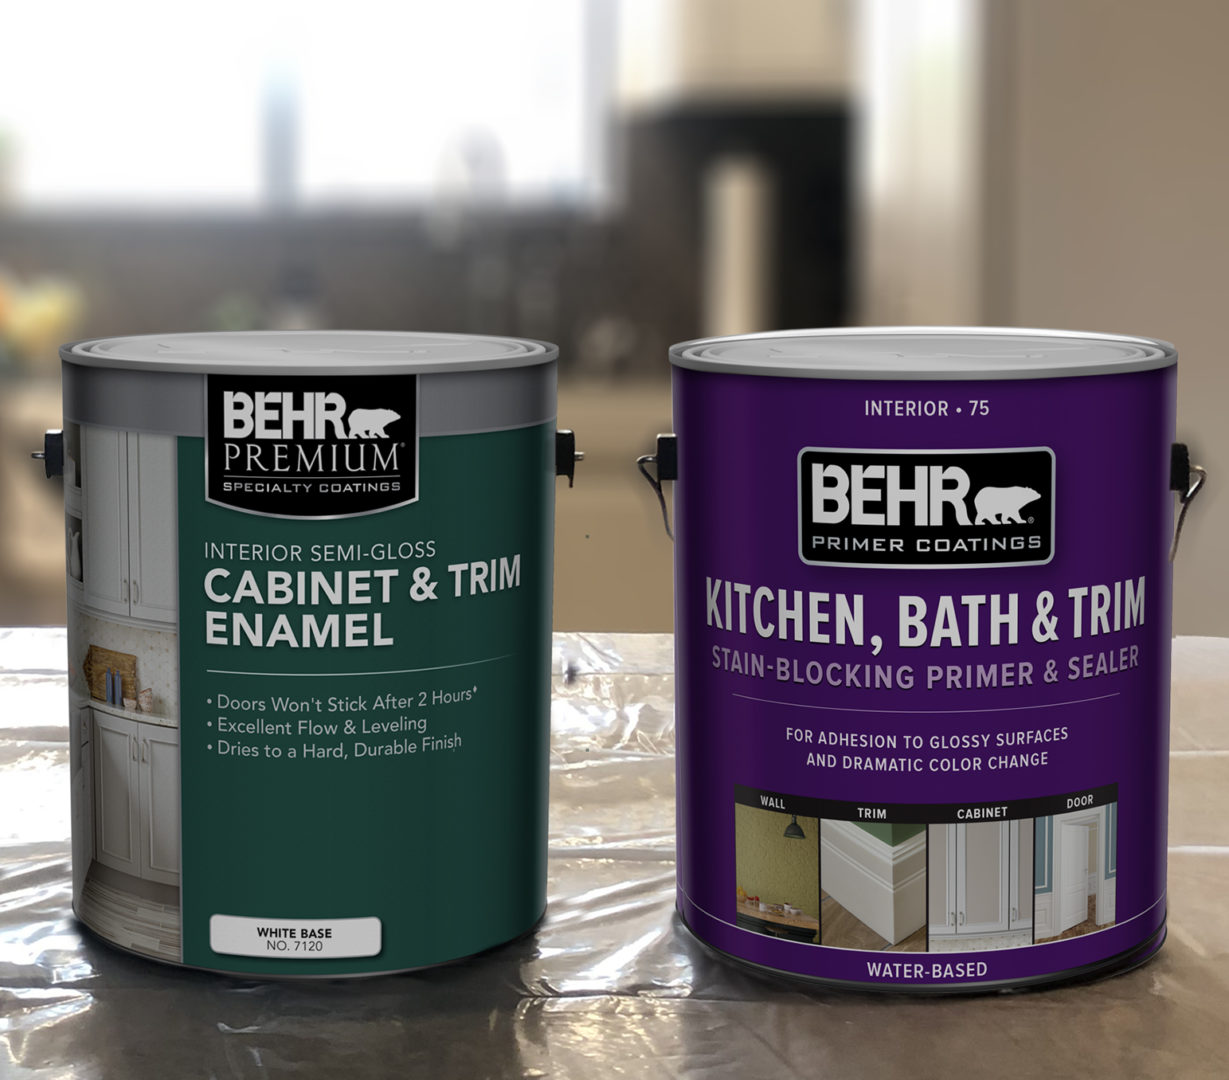 image of paint cans.